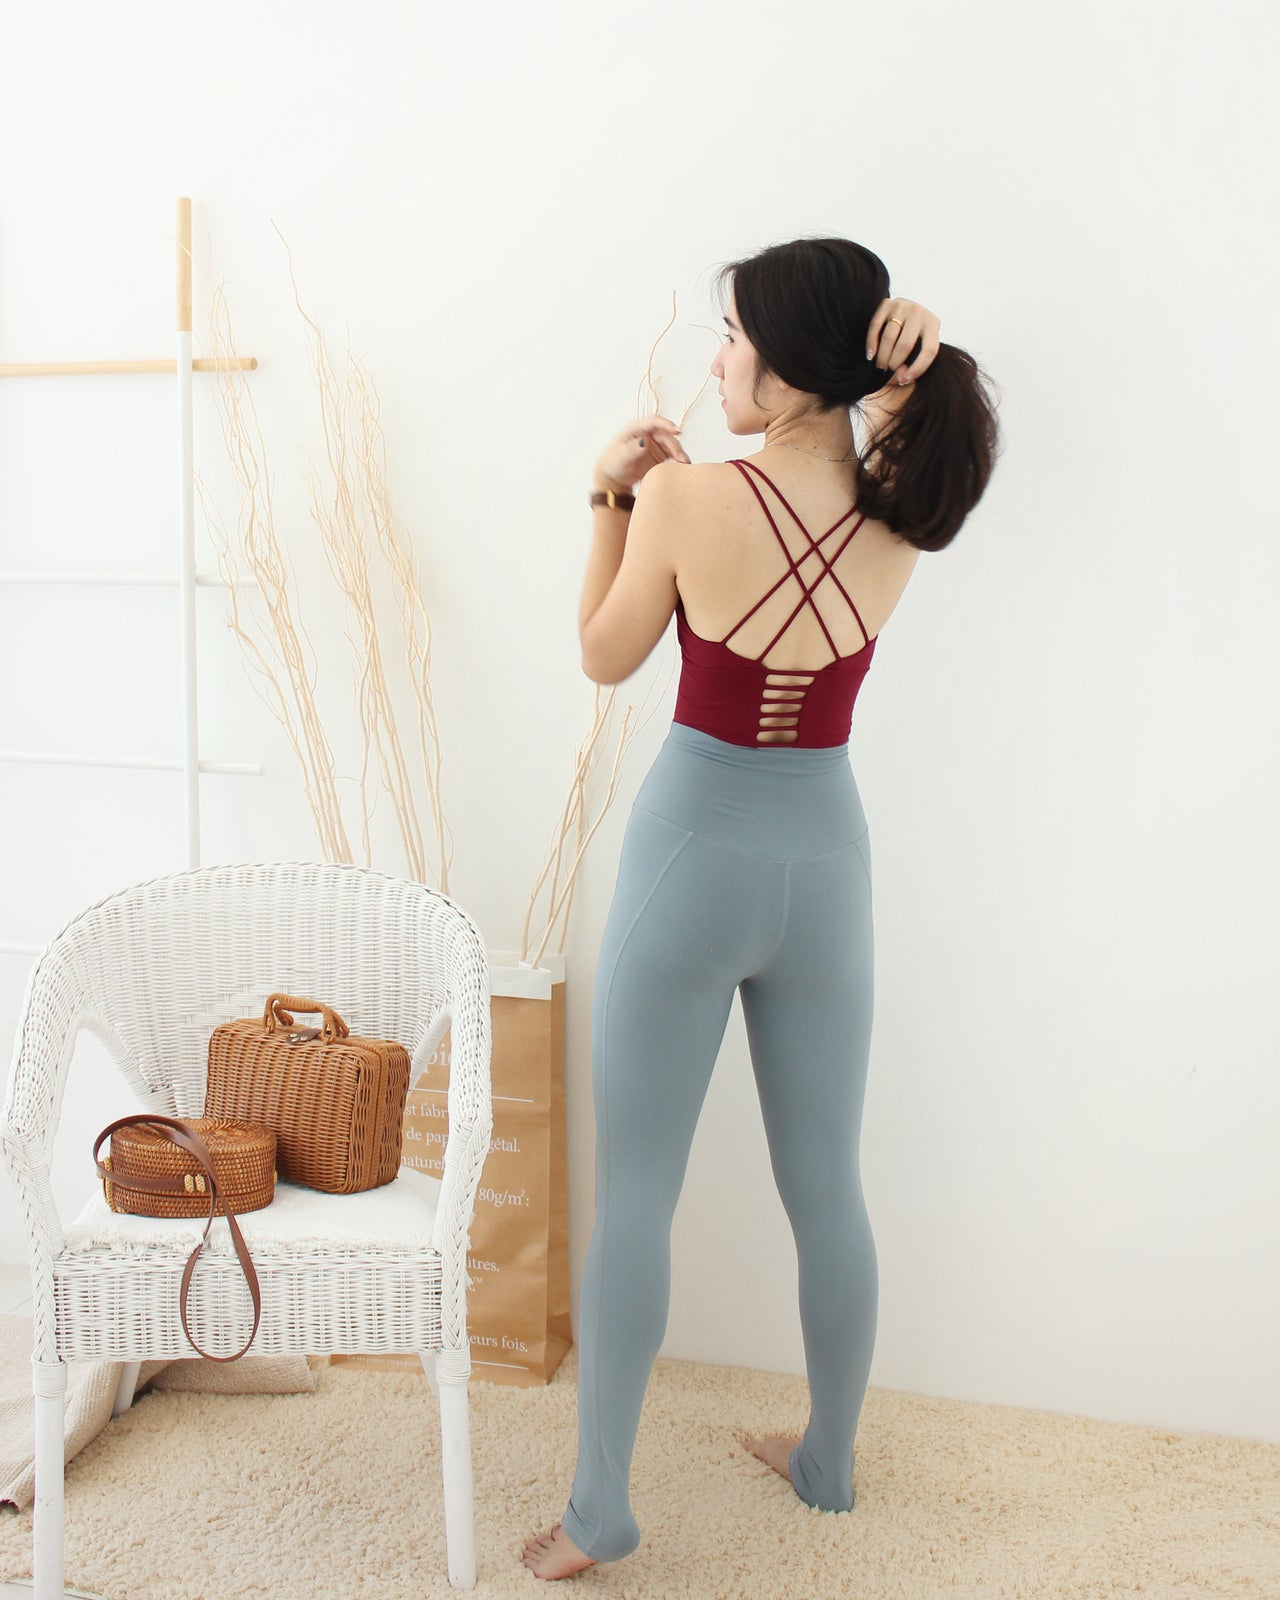 Lana Yoga Sport Bra - LovelyMadness Clothing Online Fashion Malaysia